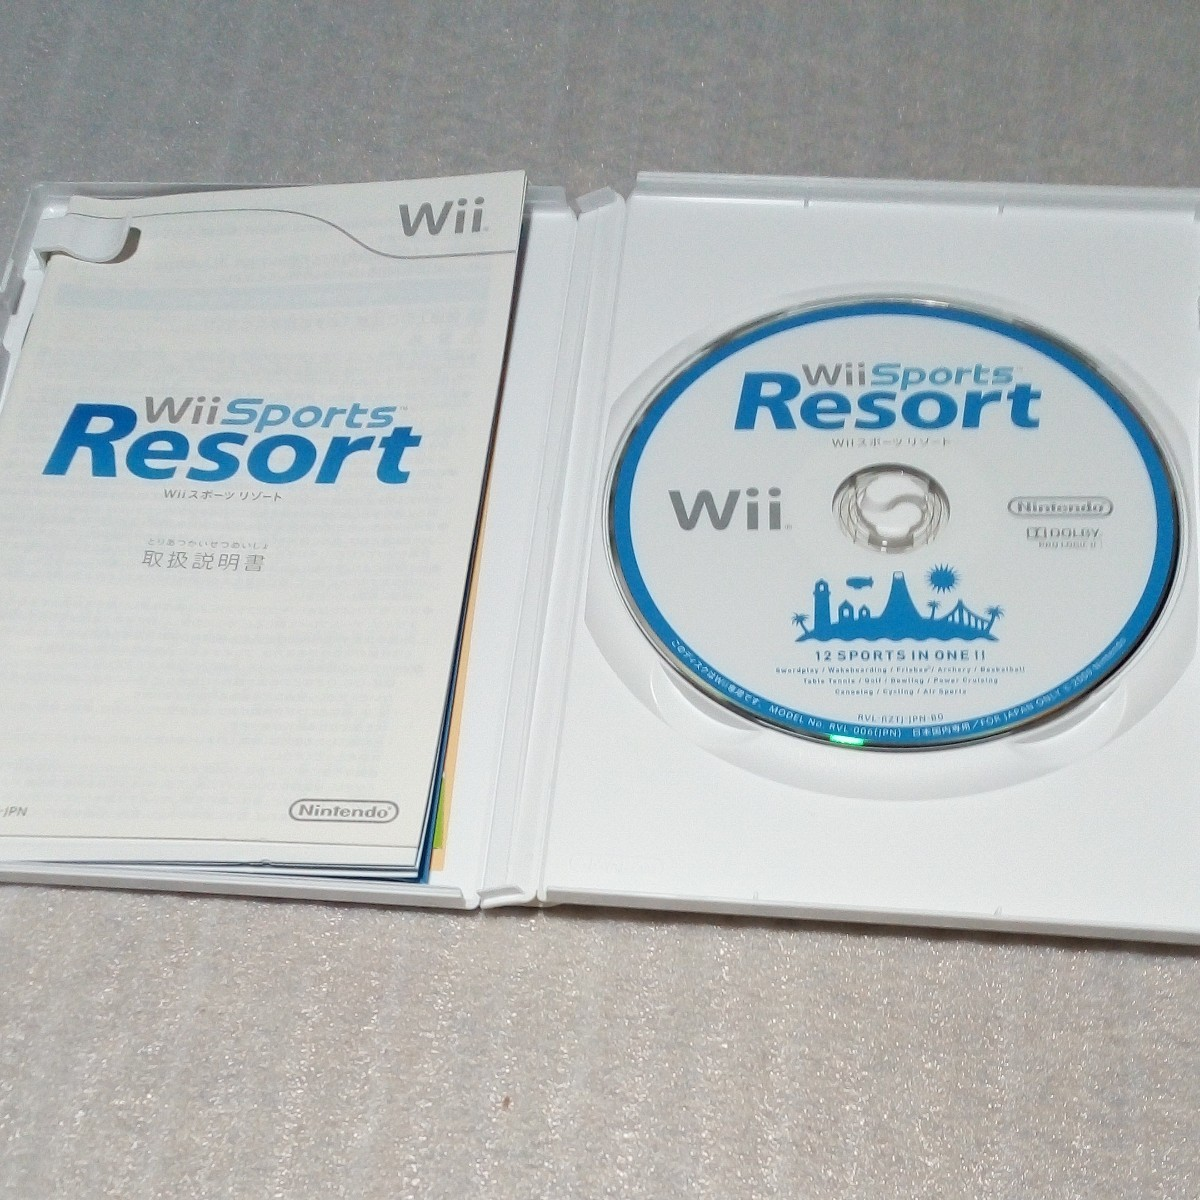 Wiiリモコン2個 モーションプラス2個 Wiiスポーツリゾート